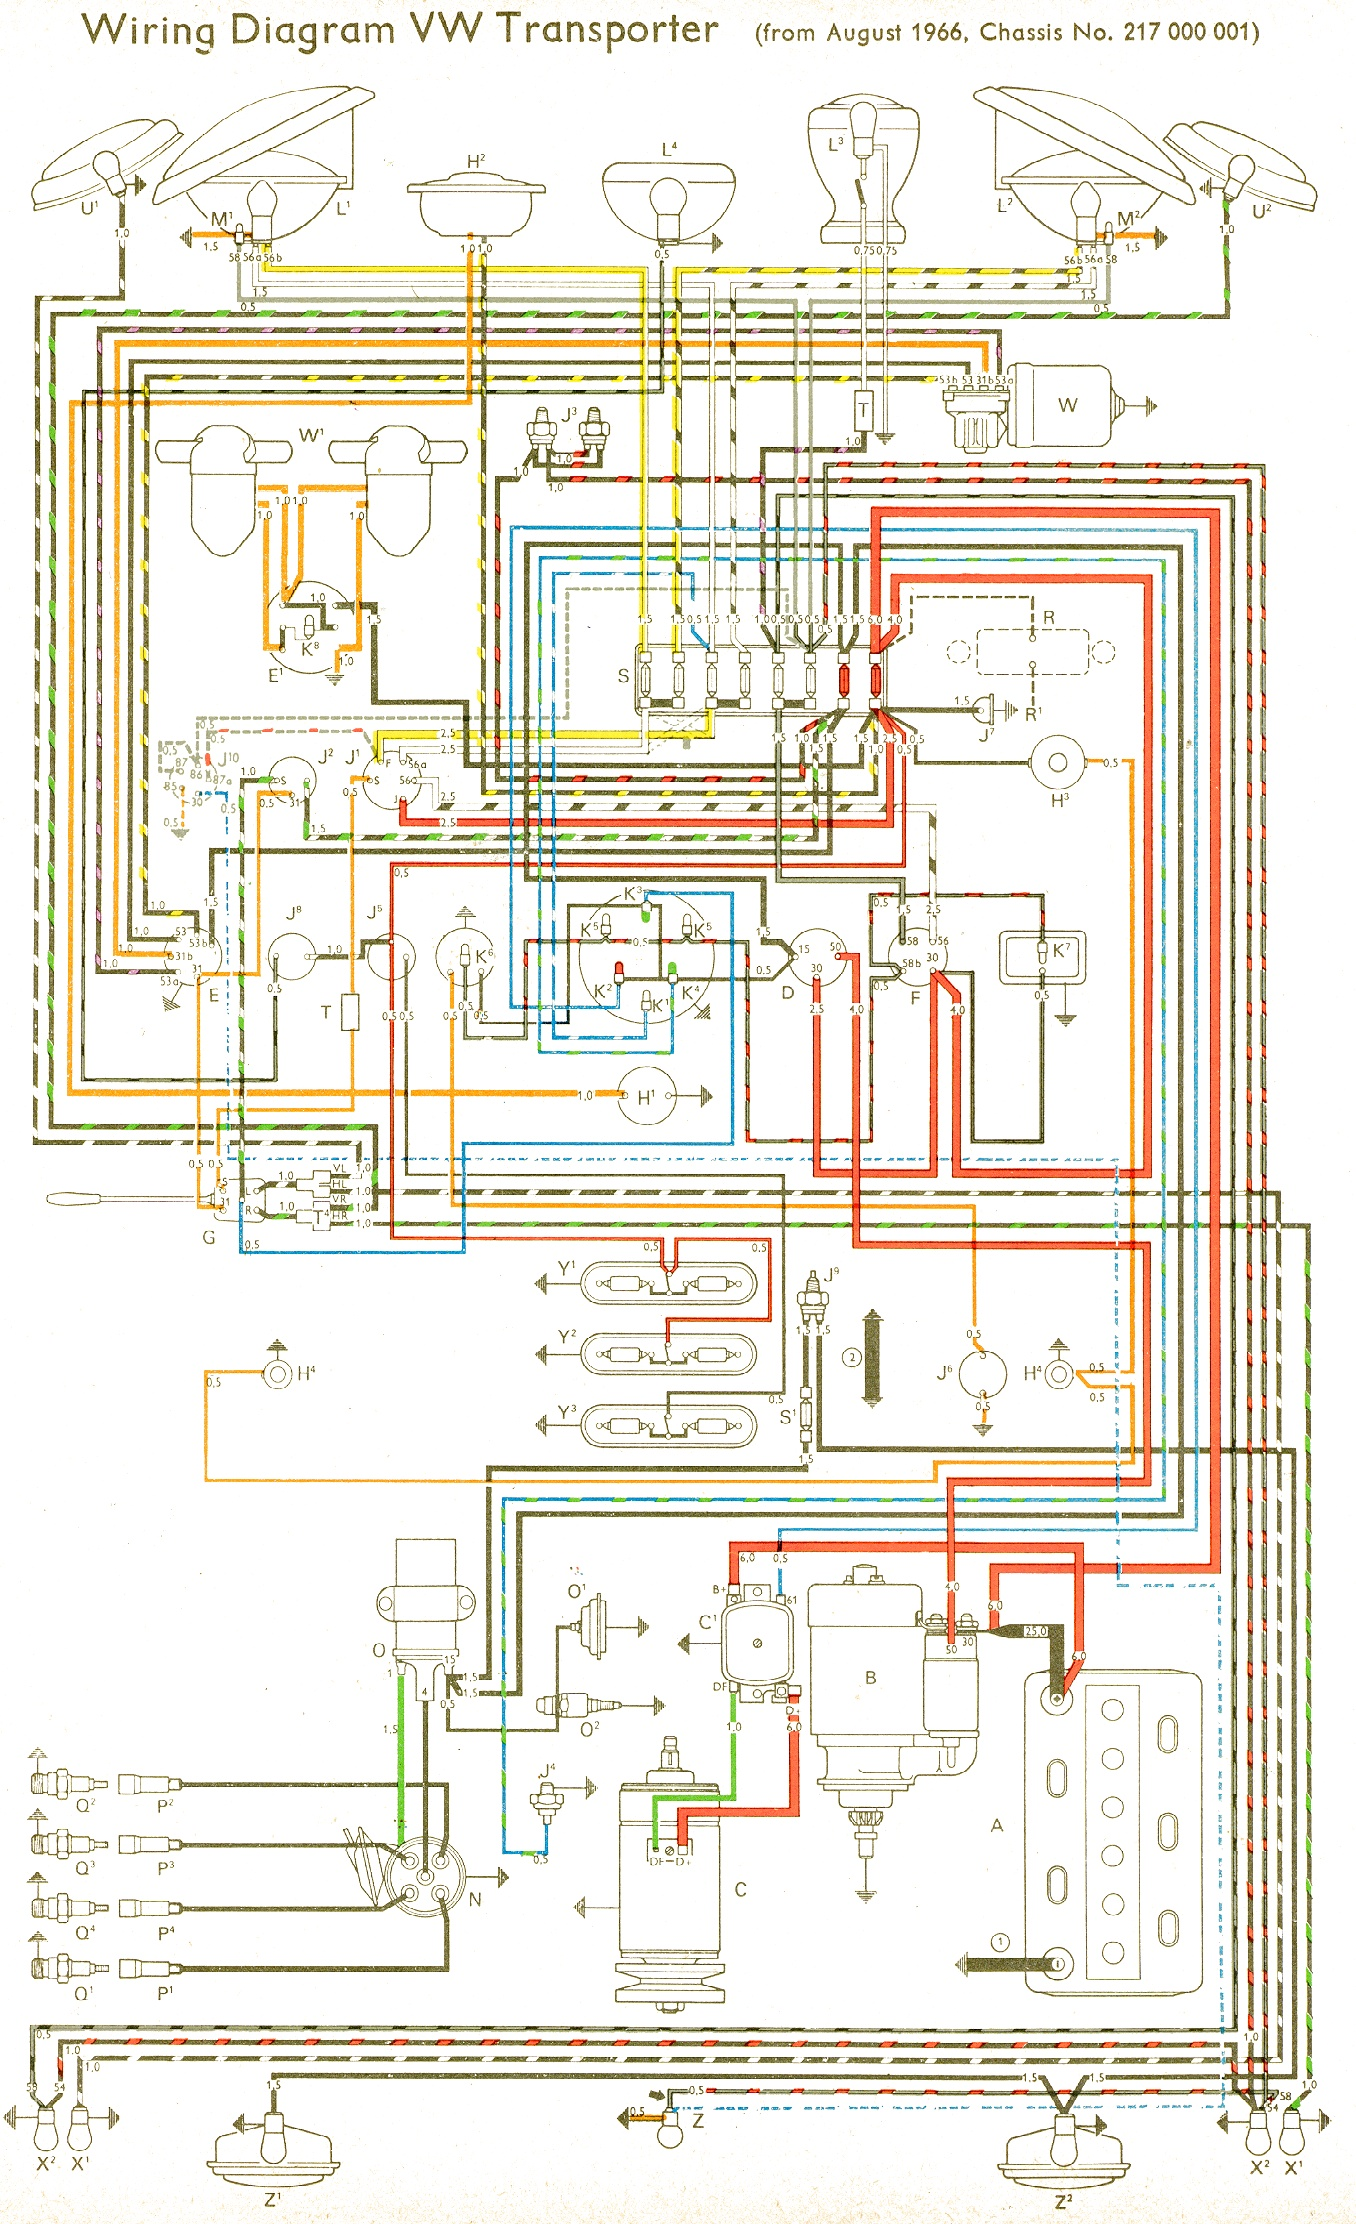 bus 66 bus wiring diagram vw wiring harness diagram \u2022 wiring diagrams j 1965 vw bus wiring harness at cos-gaming.co